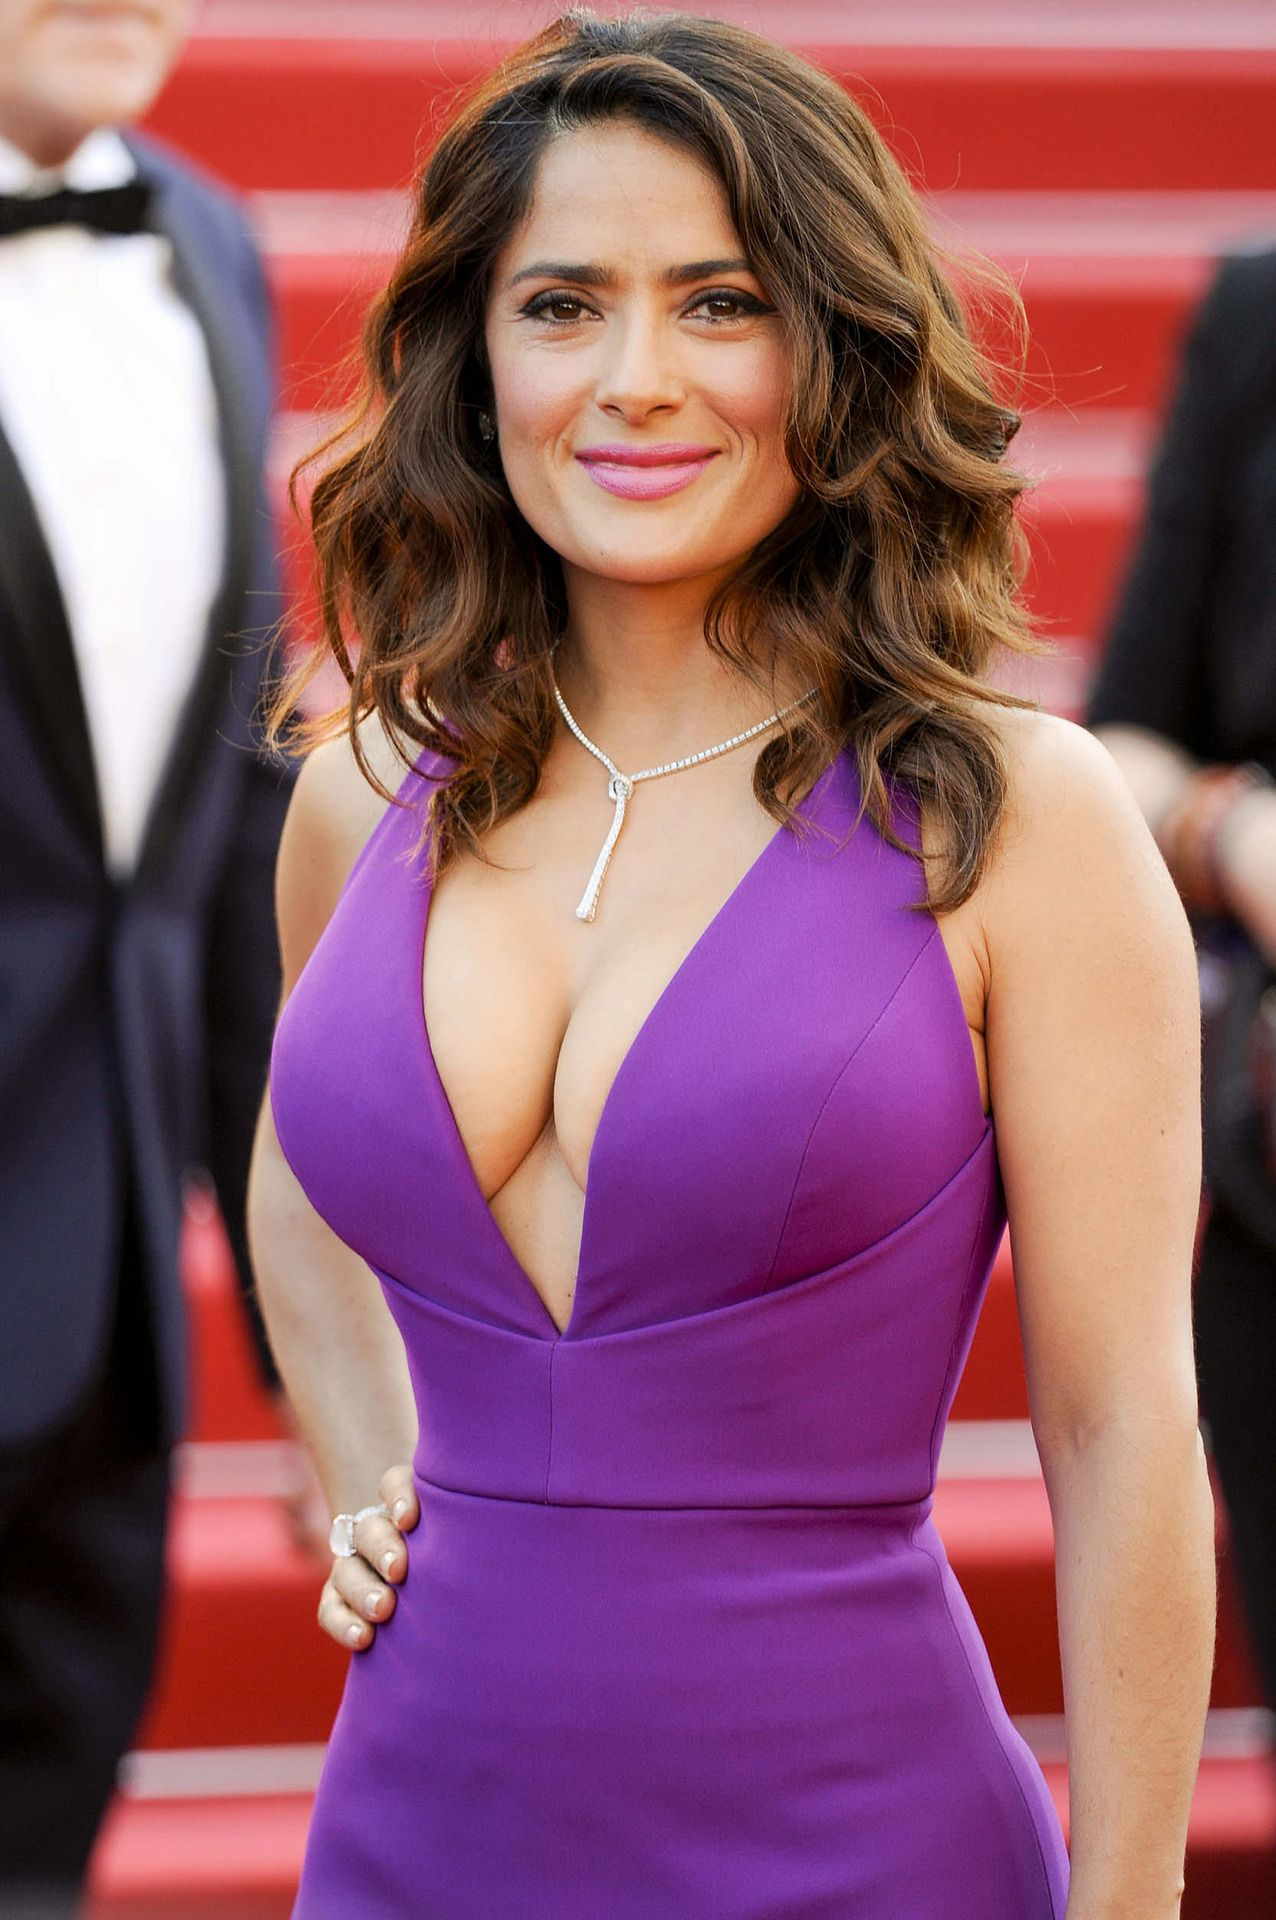 eda3bcde93907dbd692c5408640657e5 40+ Photos Of Celebrities They Would Not Want You To See